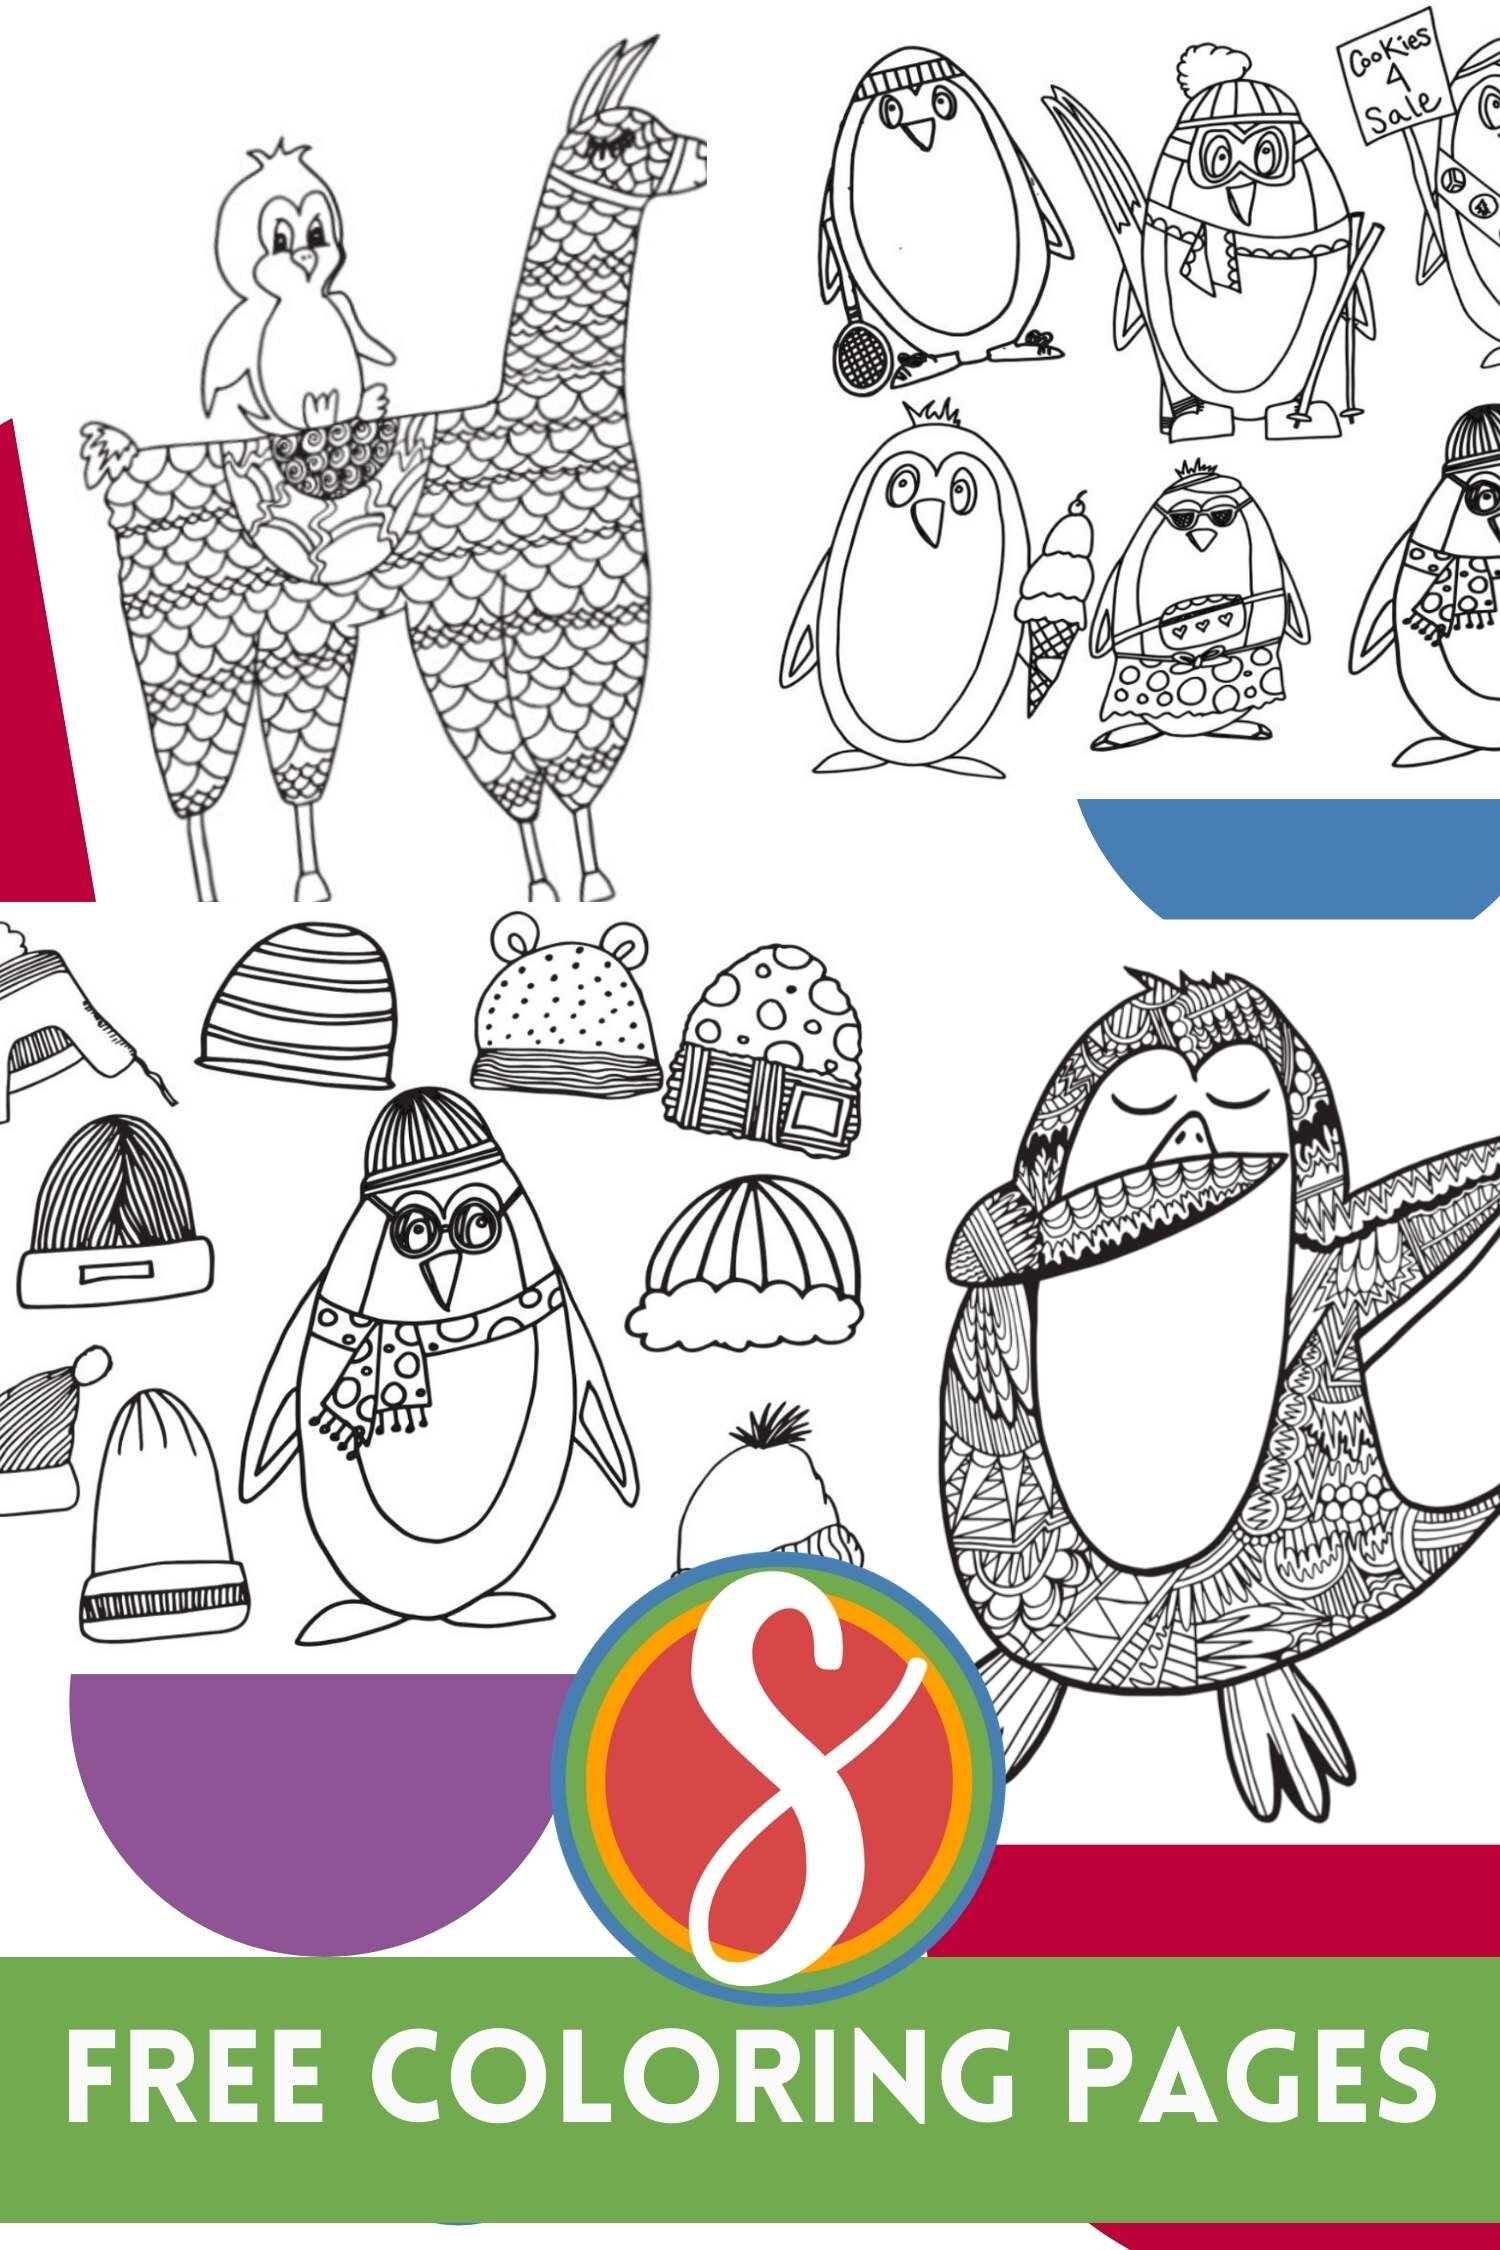 free printable penguin coloring pages.jpg